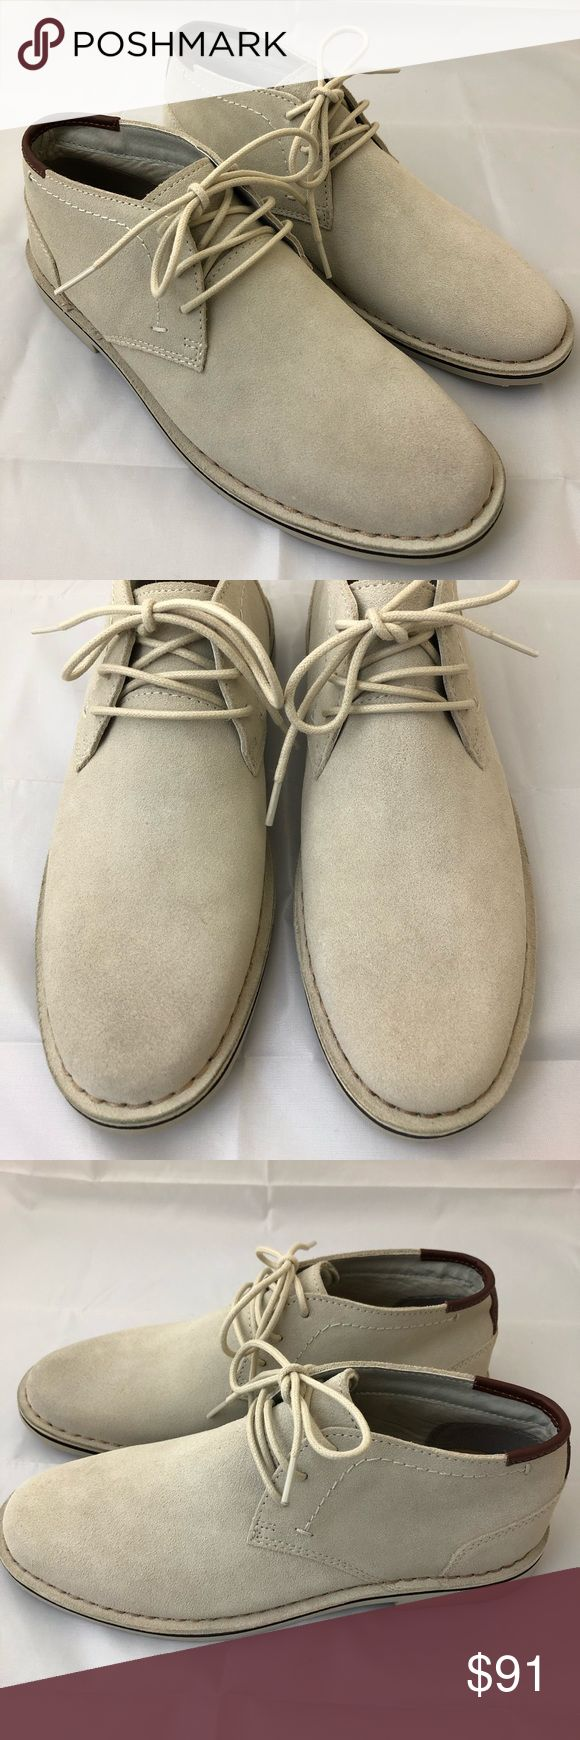 KENNETH COLE DESERT SUN SUEDE CHUKKA BOOTS NEW REACTION KENNETH COLE MENS DESERT SUN SUEDE CHUKKA BOOTS - BEIGE - SIZE 7.5 New without the box or tags. Reaction Kenneth Cole Shoes Chukka Boots